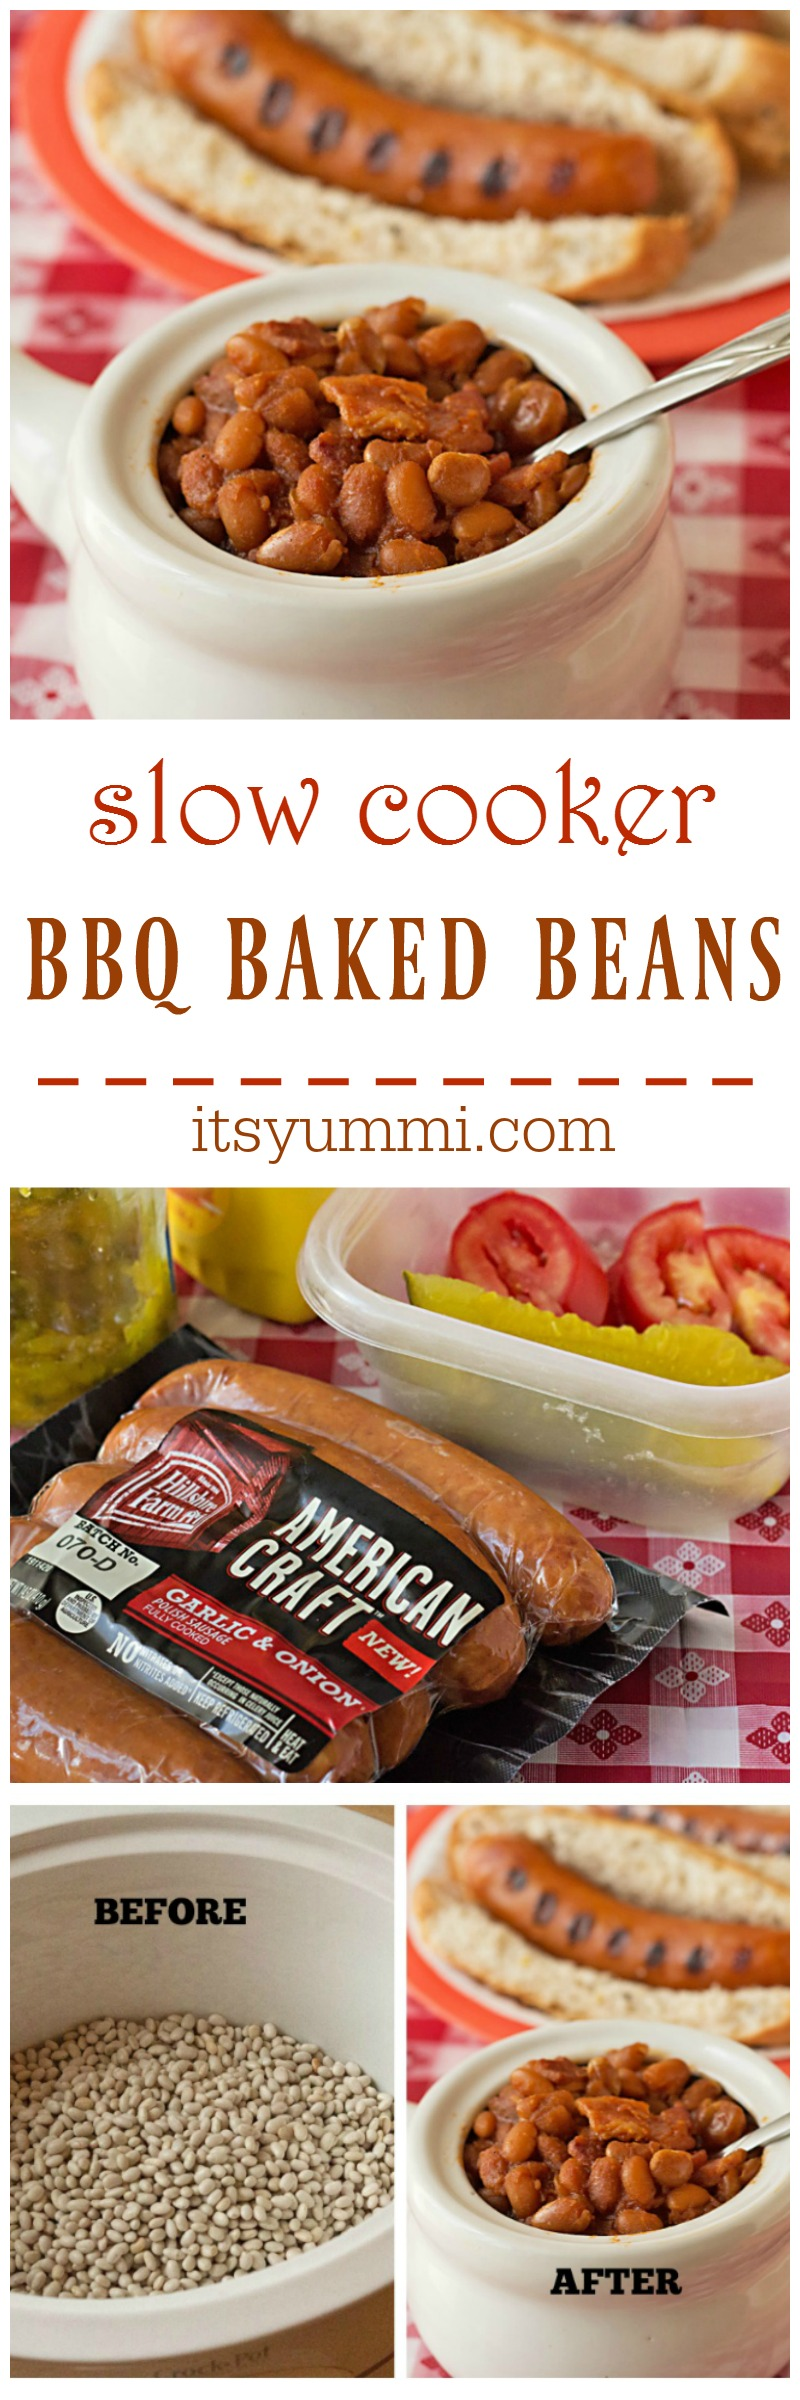 Try this easy slow cooker BBQ baked beans recipe as a great side dish for summer parties and outdoor entertaining. Baked beans made from scratch using dried beans.